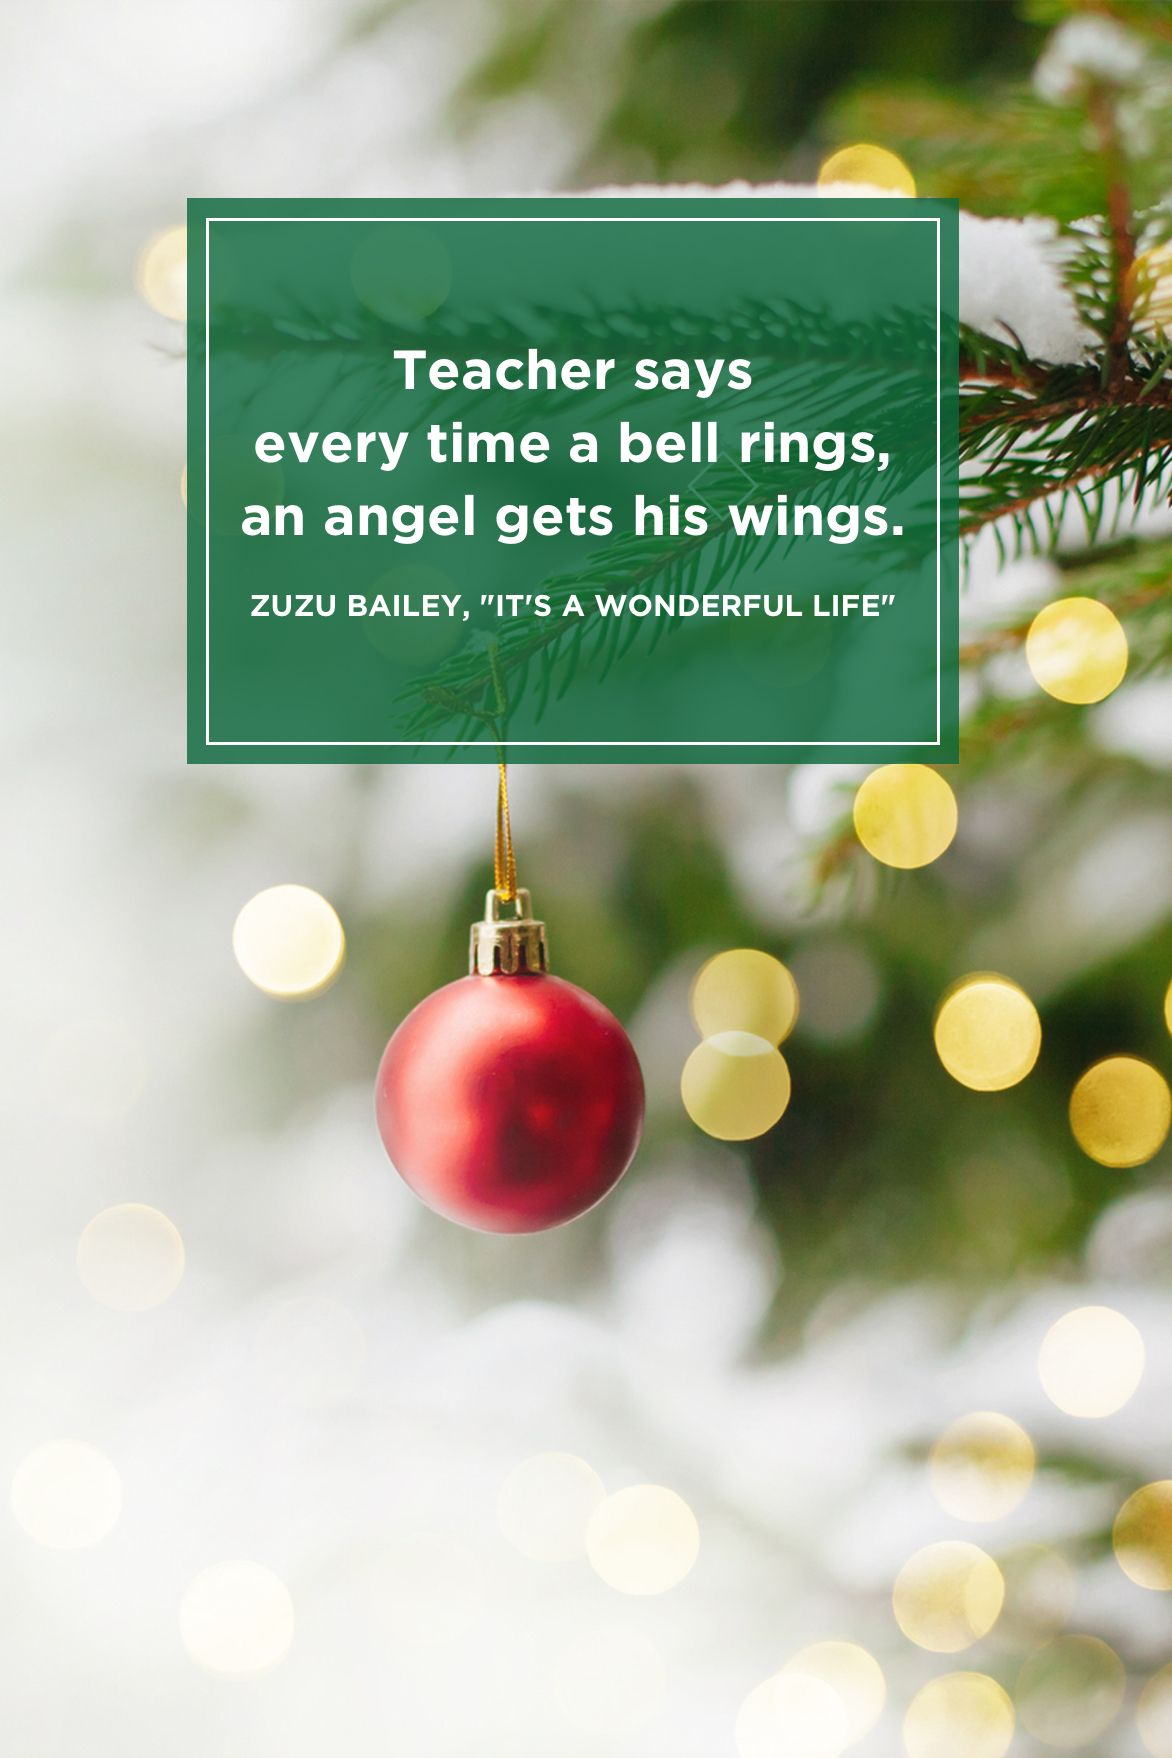 52 Best Christmas Quotes - Most Inspiring & Festive Holiday ...